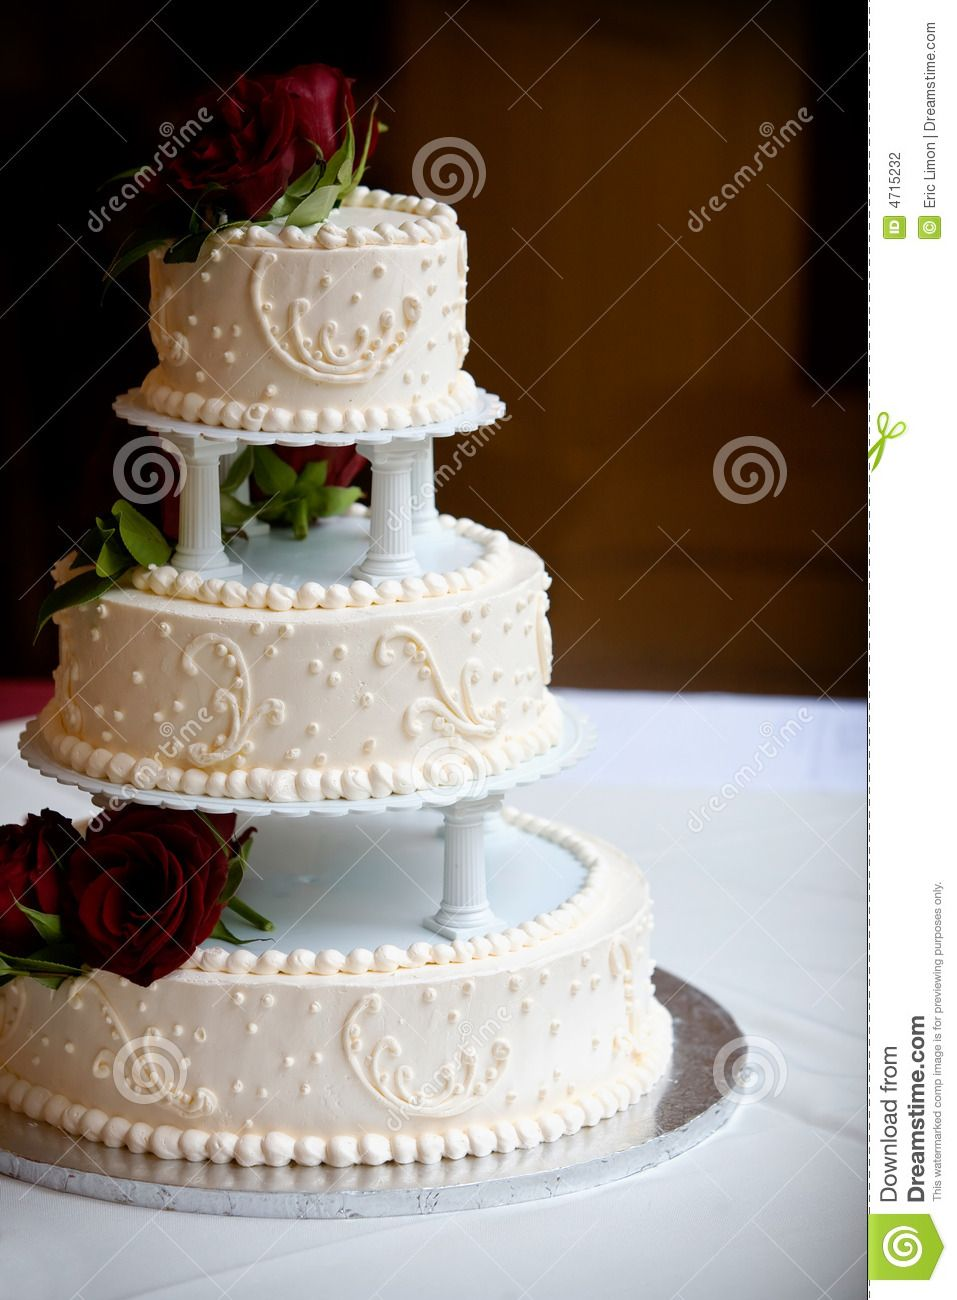 Wedding Cake With Three Tiers - Download From Over 30 Million High ...